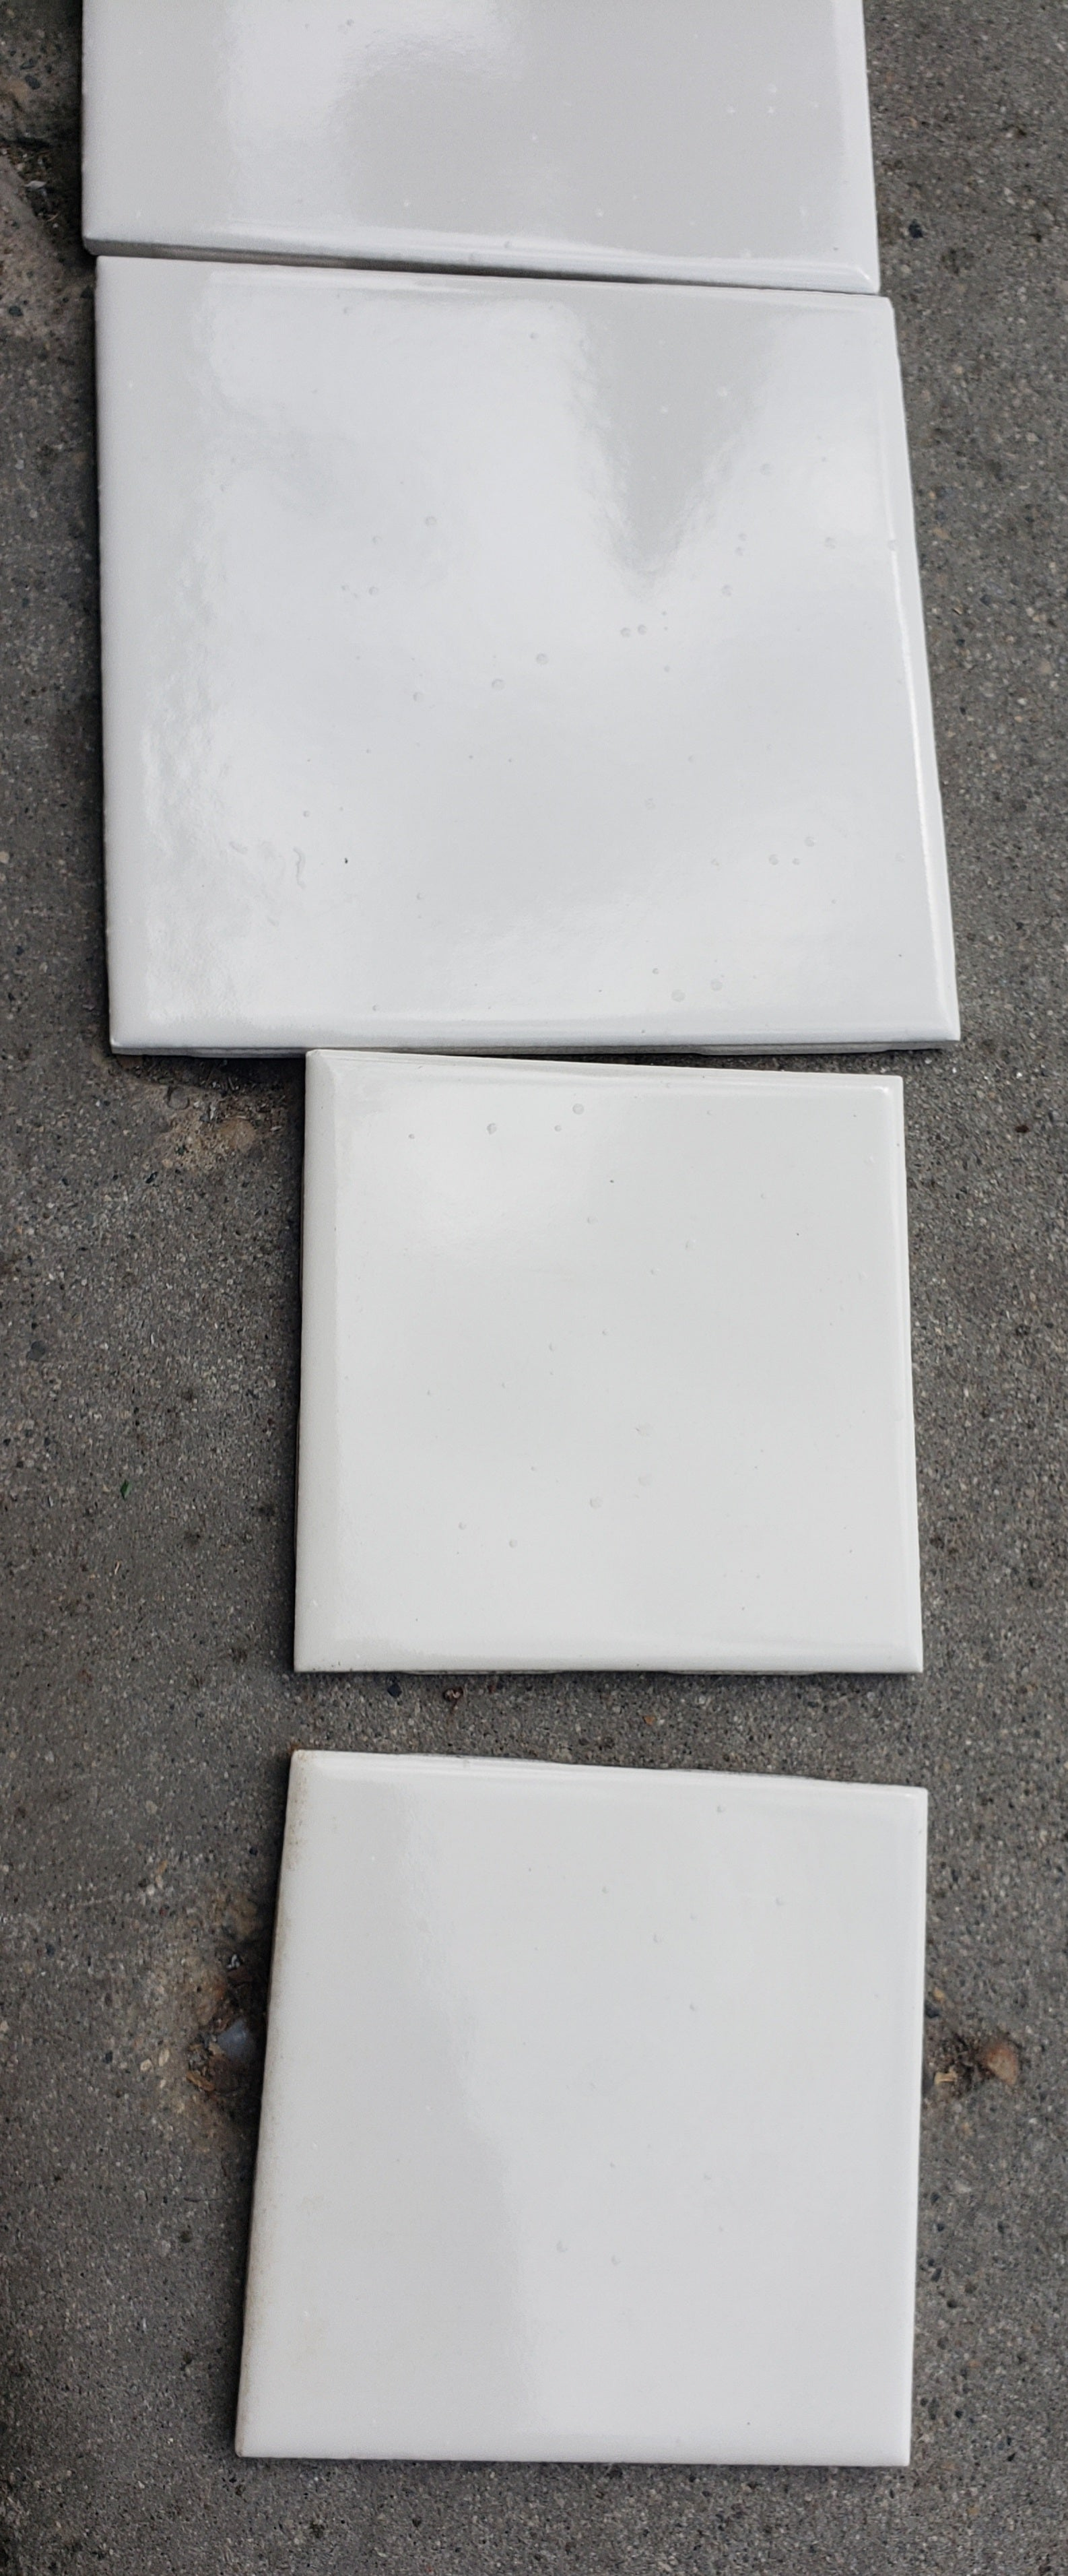 Wall Tile 6 x 6 Biscuit Gloss Ceramic (10 sq ft in a box) (179 boxes available) - Macomb County ReStores